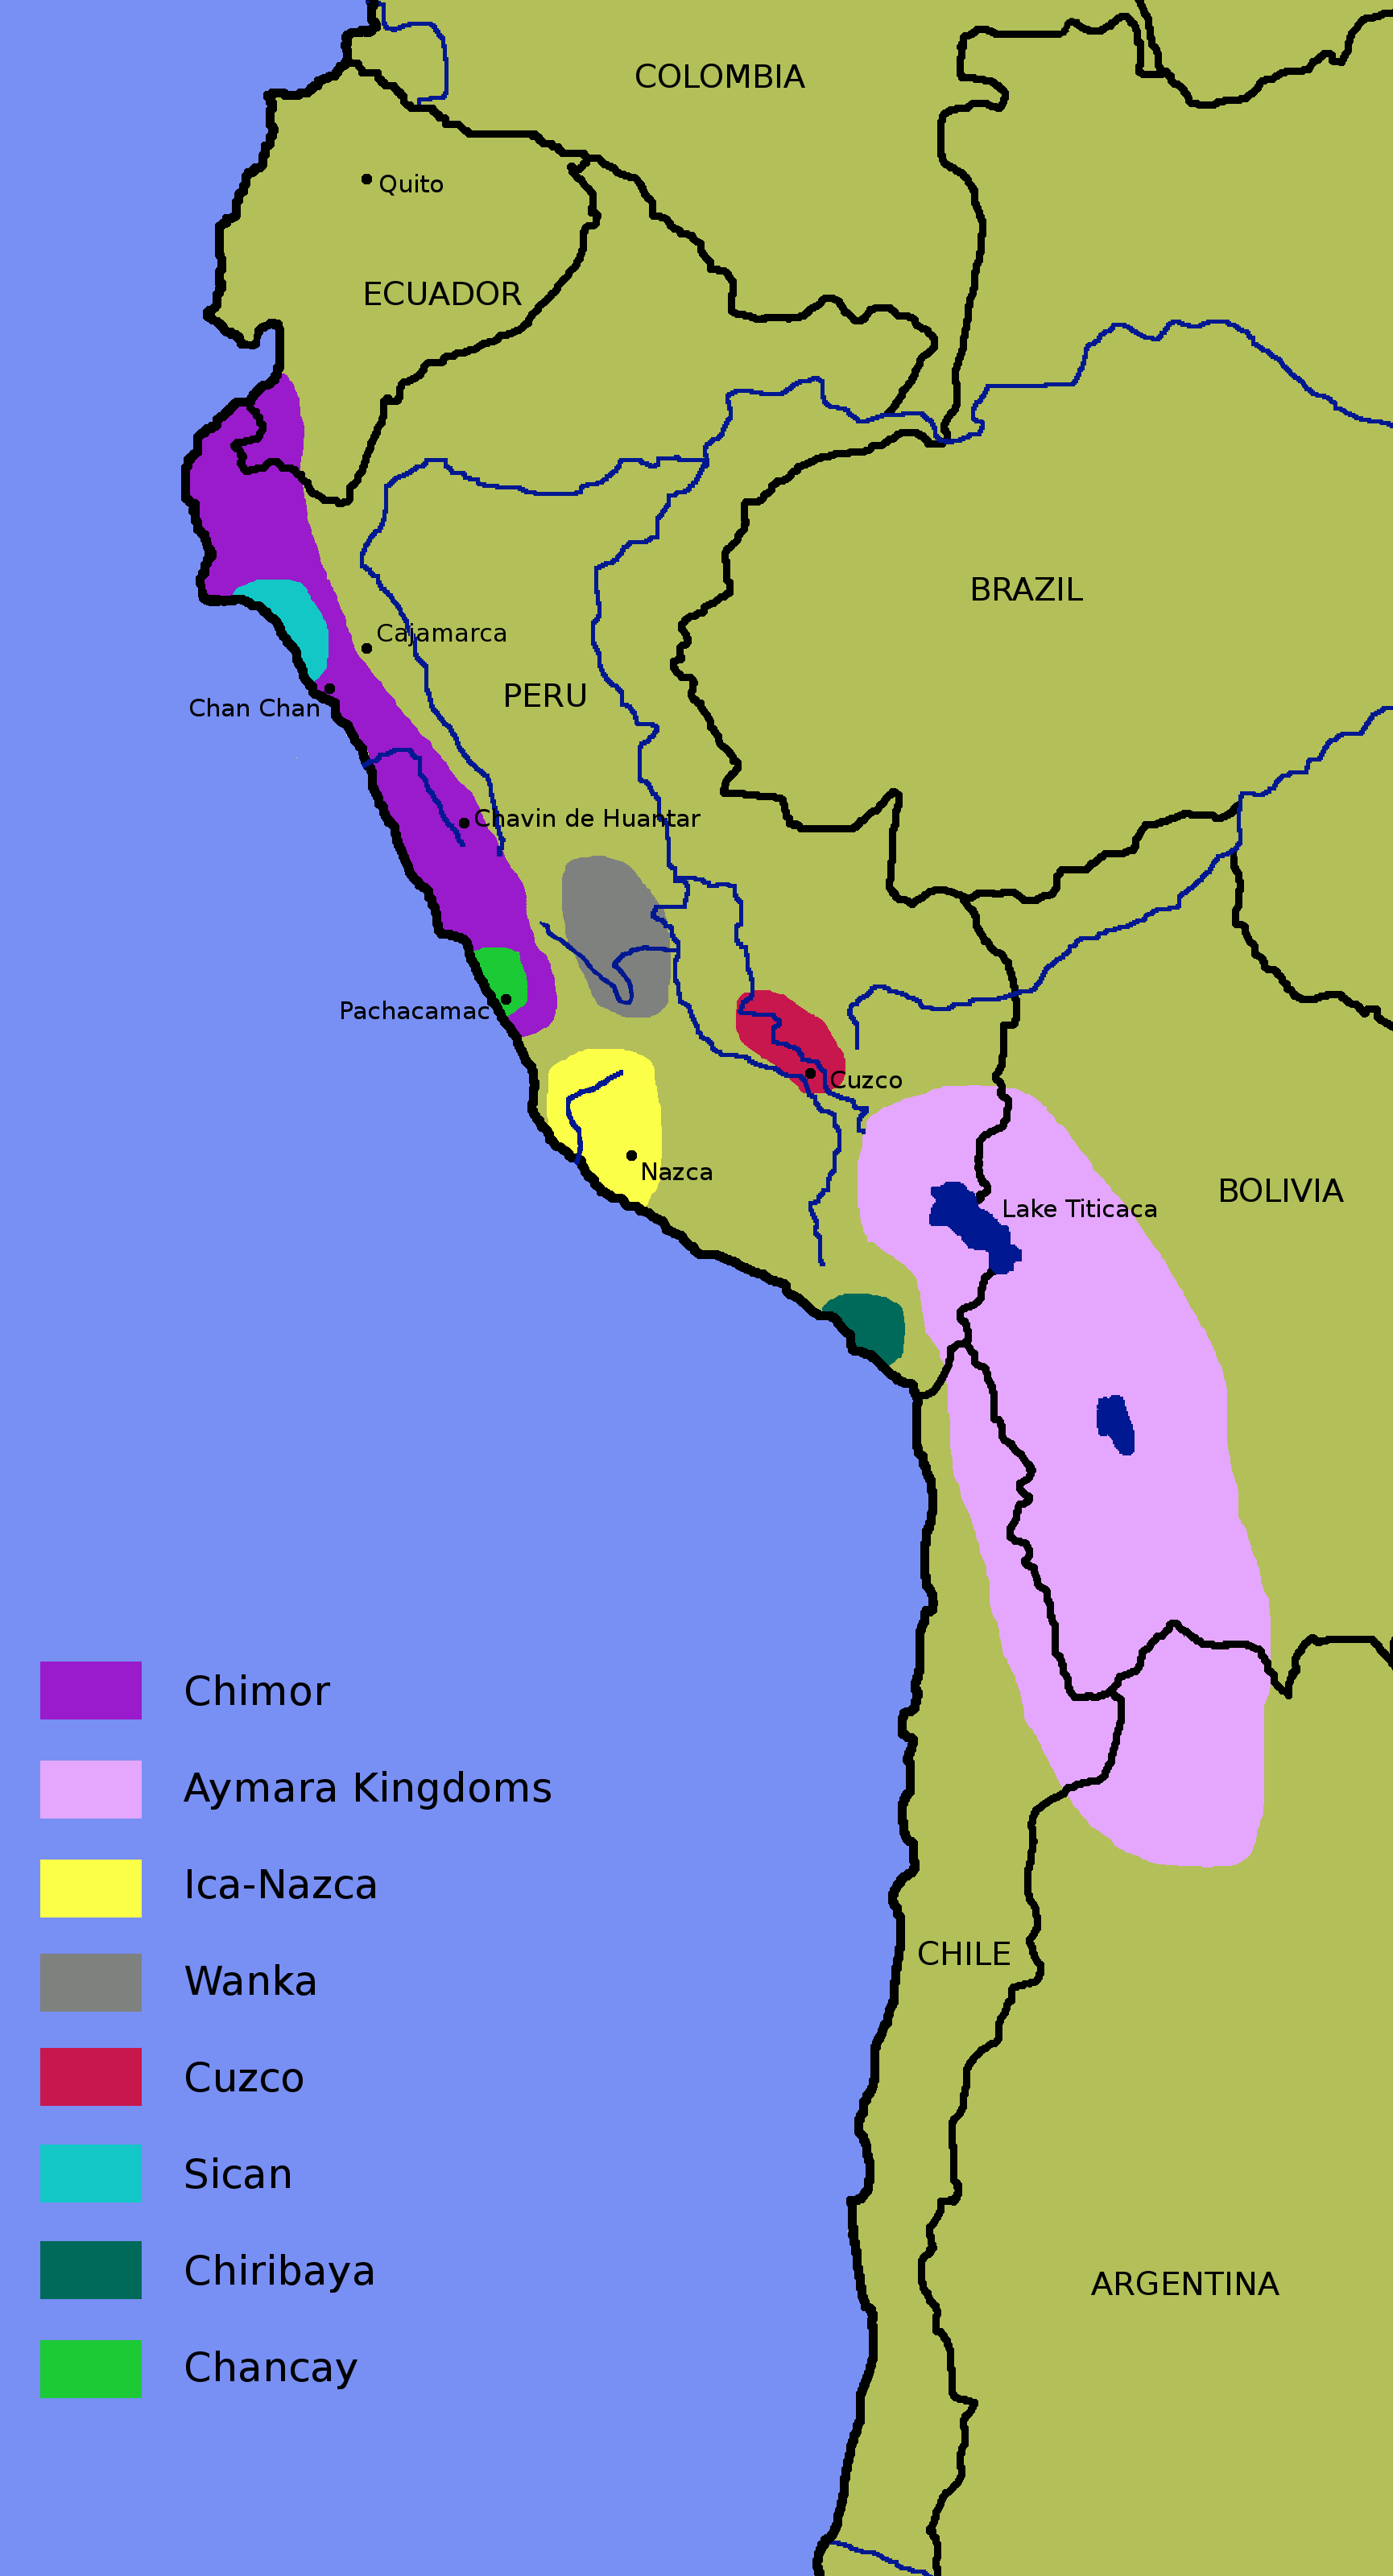 Atlas of the Inca Empire - Wikimedia Commons on inca art, chimu map, inca trail, francisco pizarro, mongol empire, inca food, inca civilization, inca pyramids, tenochtitlan map, inca buildings, inca roads, inca flag, inca houses, byzantine empire, roman empire, ottoman empire, inca city, machu picchu, brazil map, inca warriors, inca society, indigenous peoples of the americas, columbian exchange, greece map, mesoamerica map, lima map, inca people, nazca lines, andean civilizations, china map, inca crops,